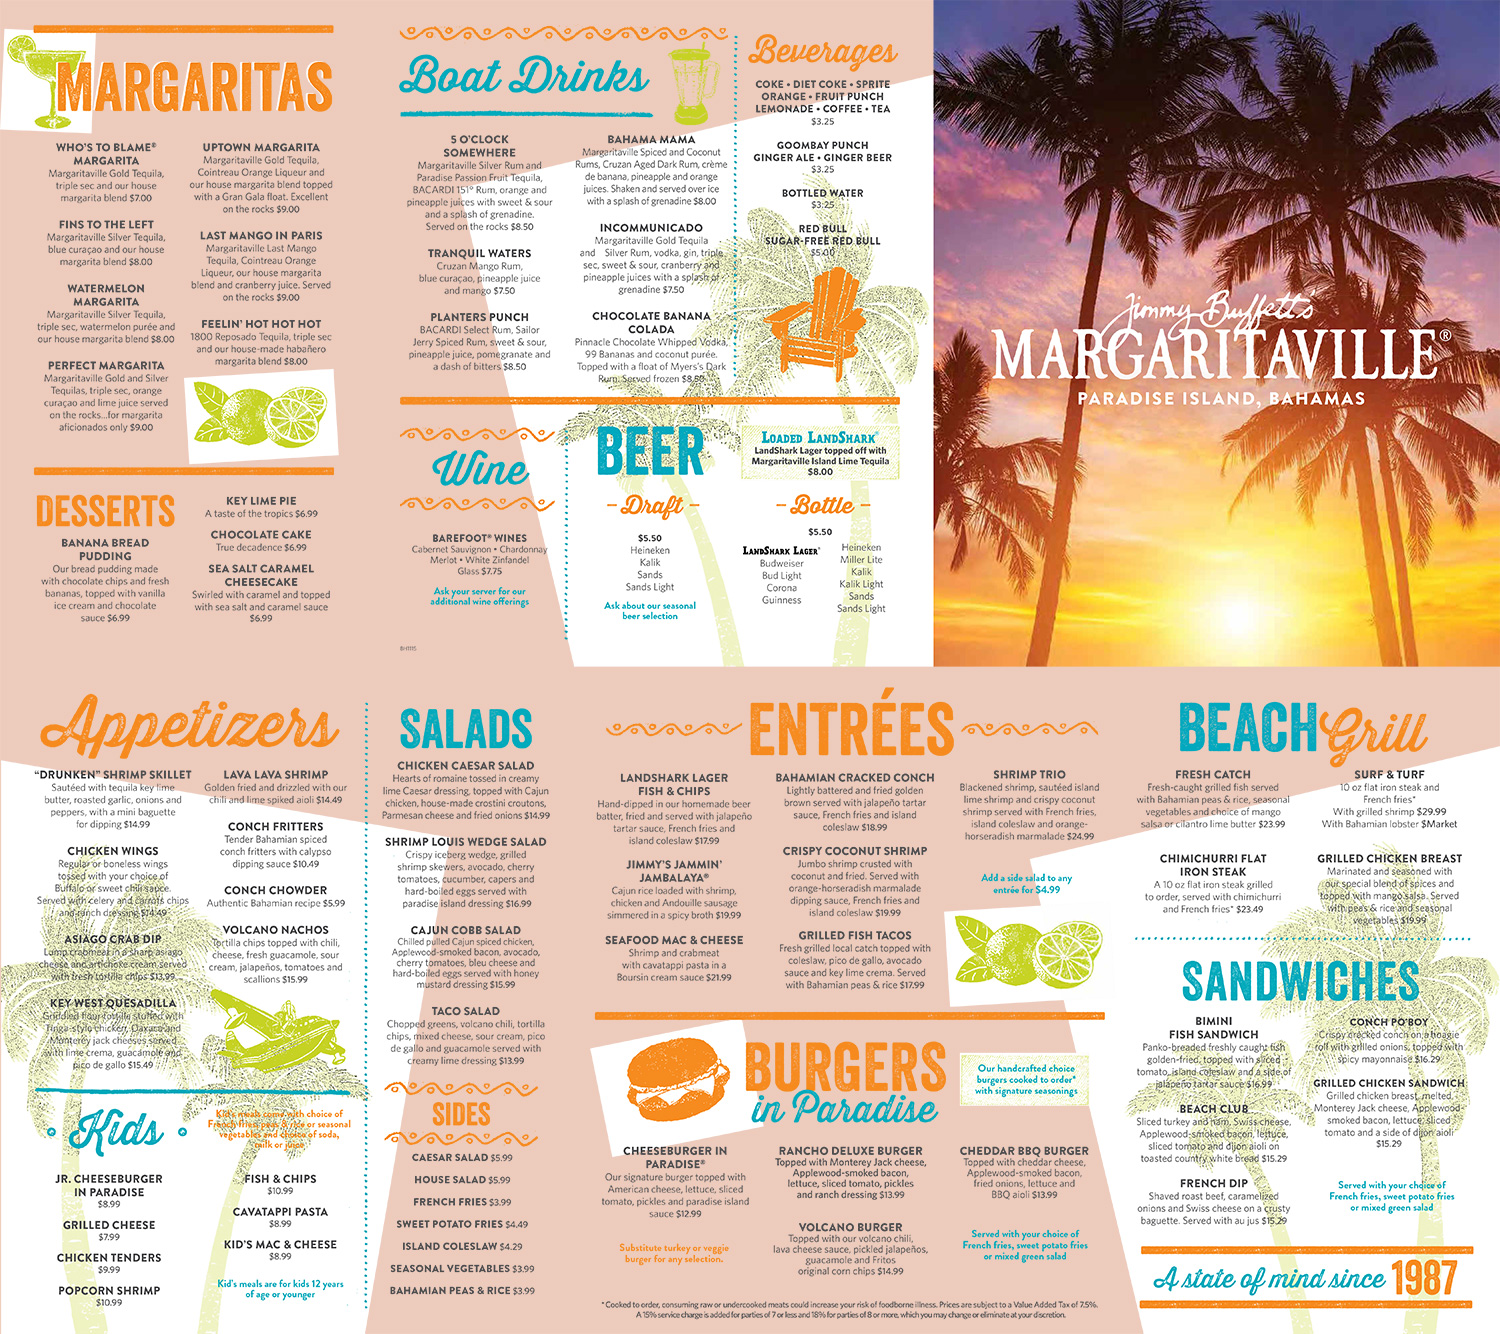 Jimmy Buffetts Margaritaville Bahamas Menu